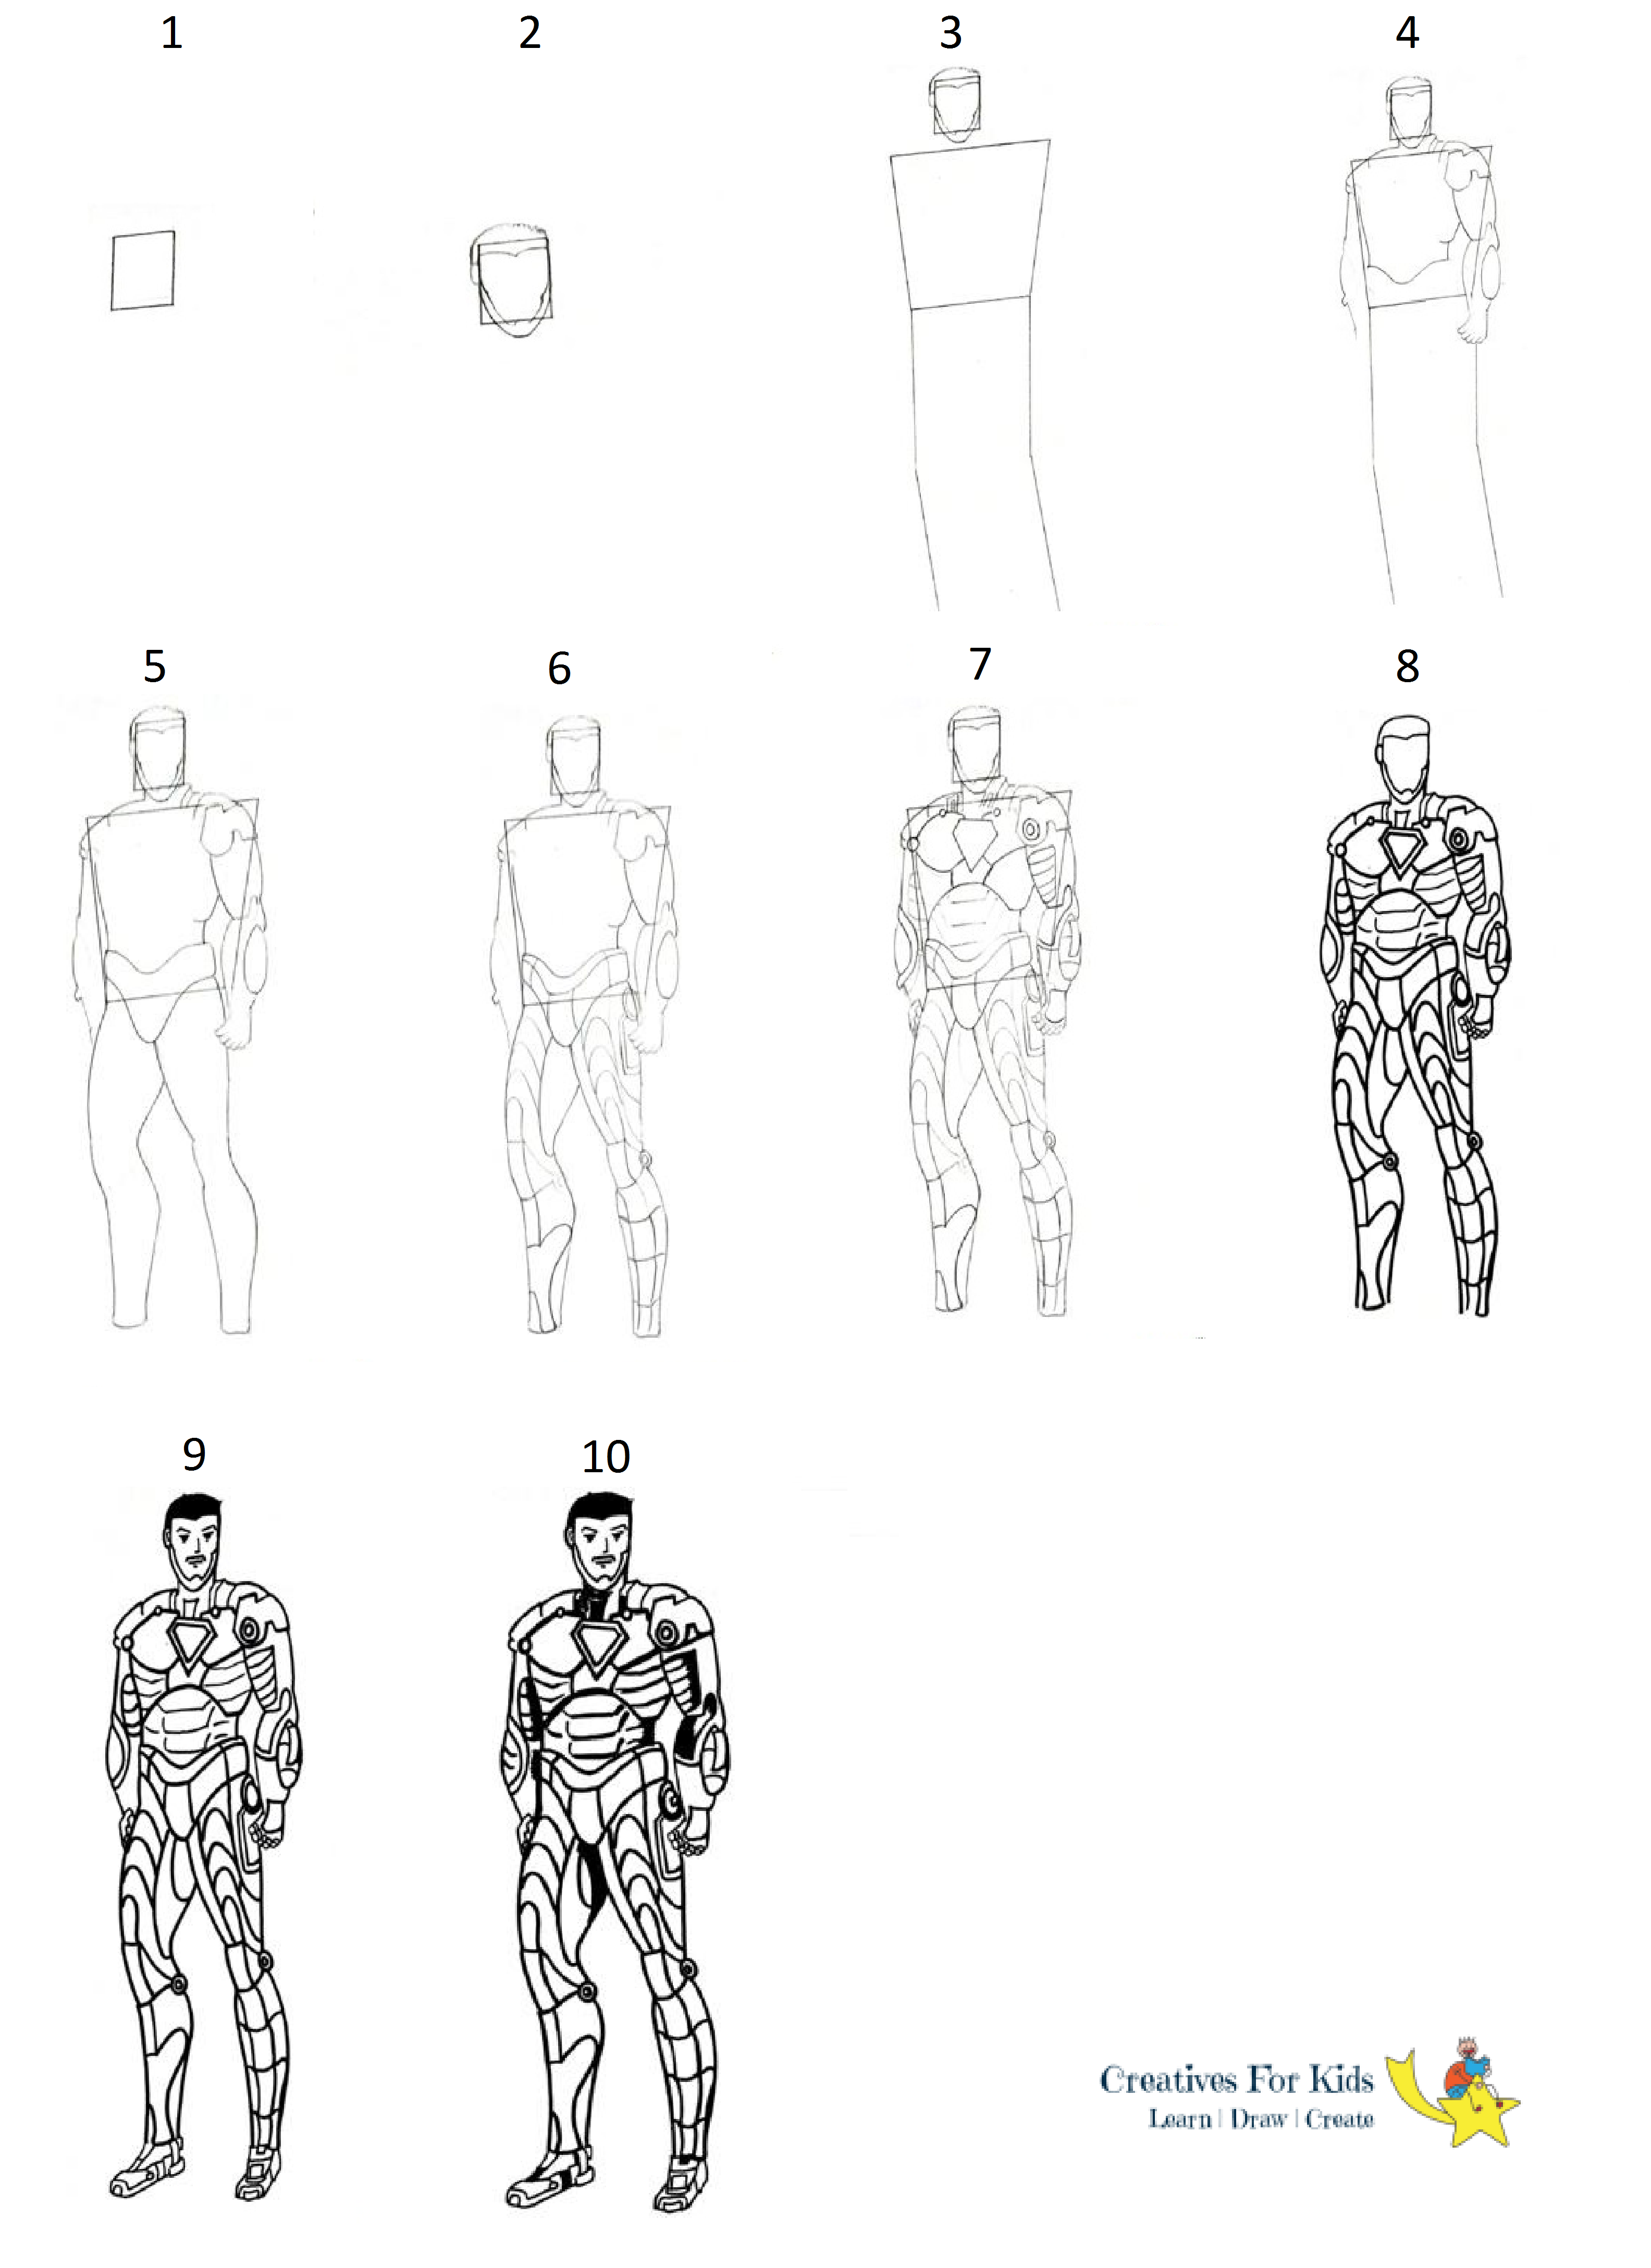 How To Draw An Ironman Step By Step Tutorial Drawings Art Instructions Step By Step Drawing